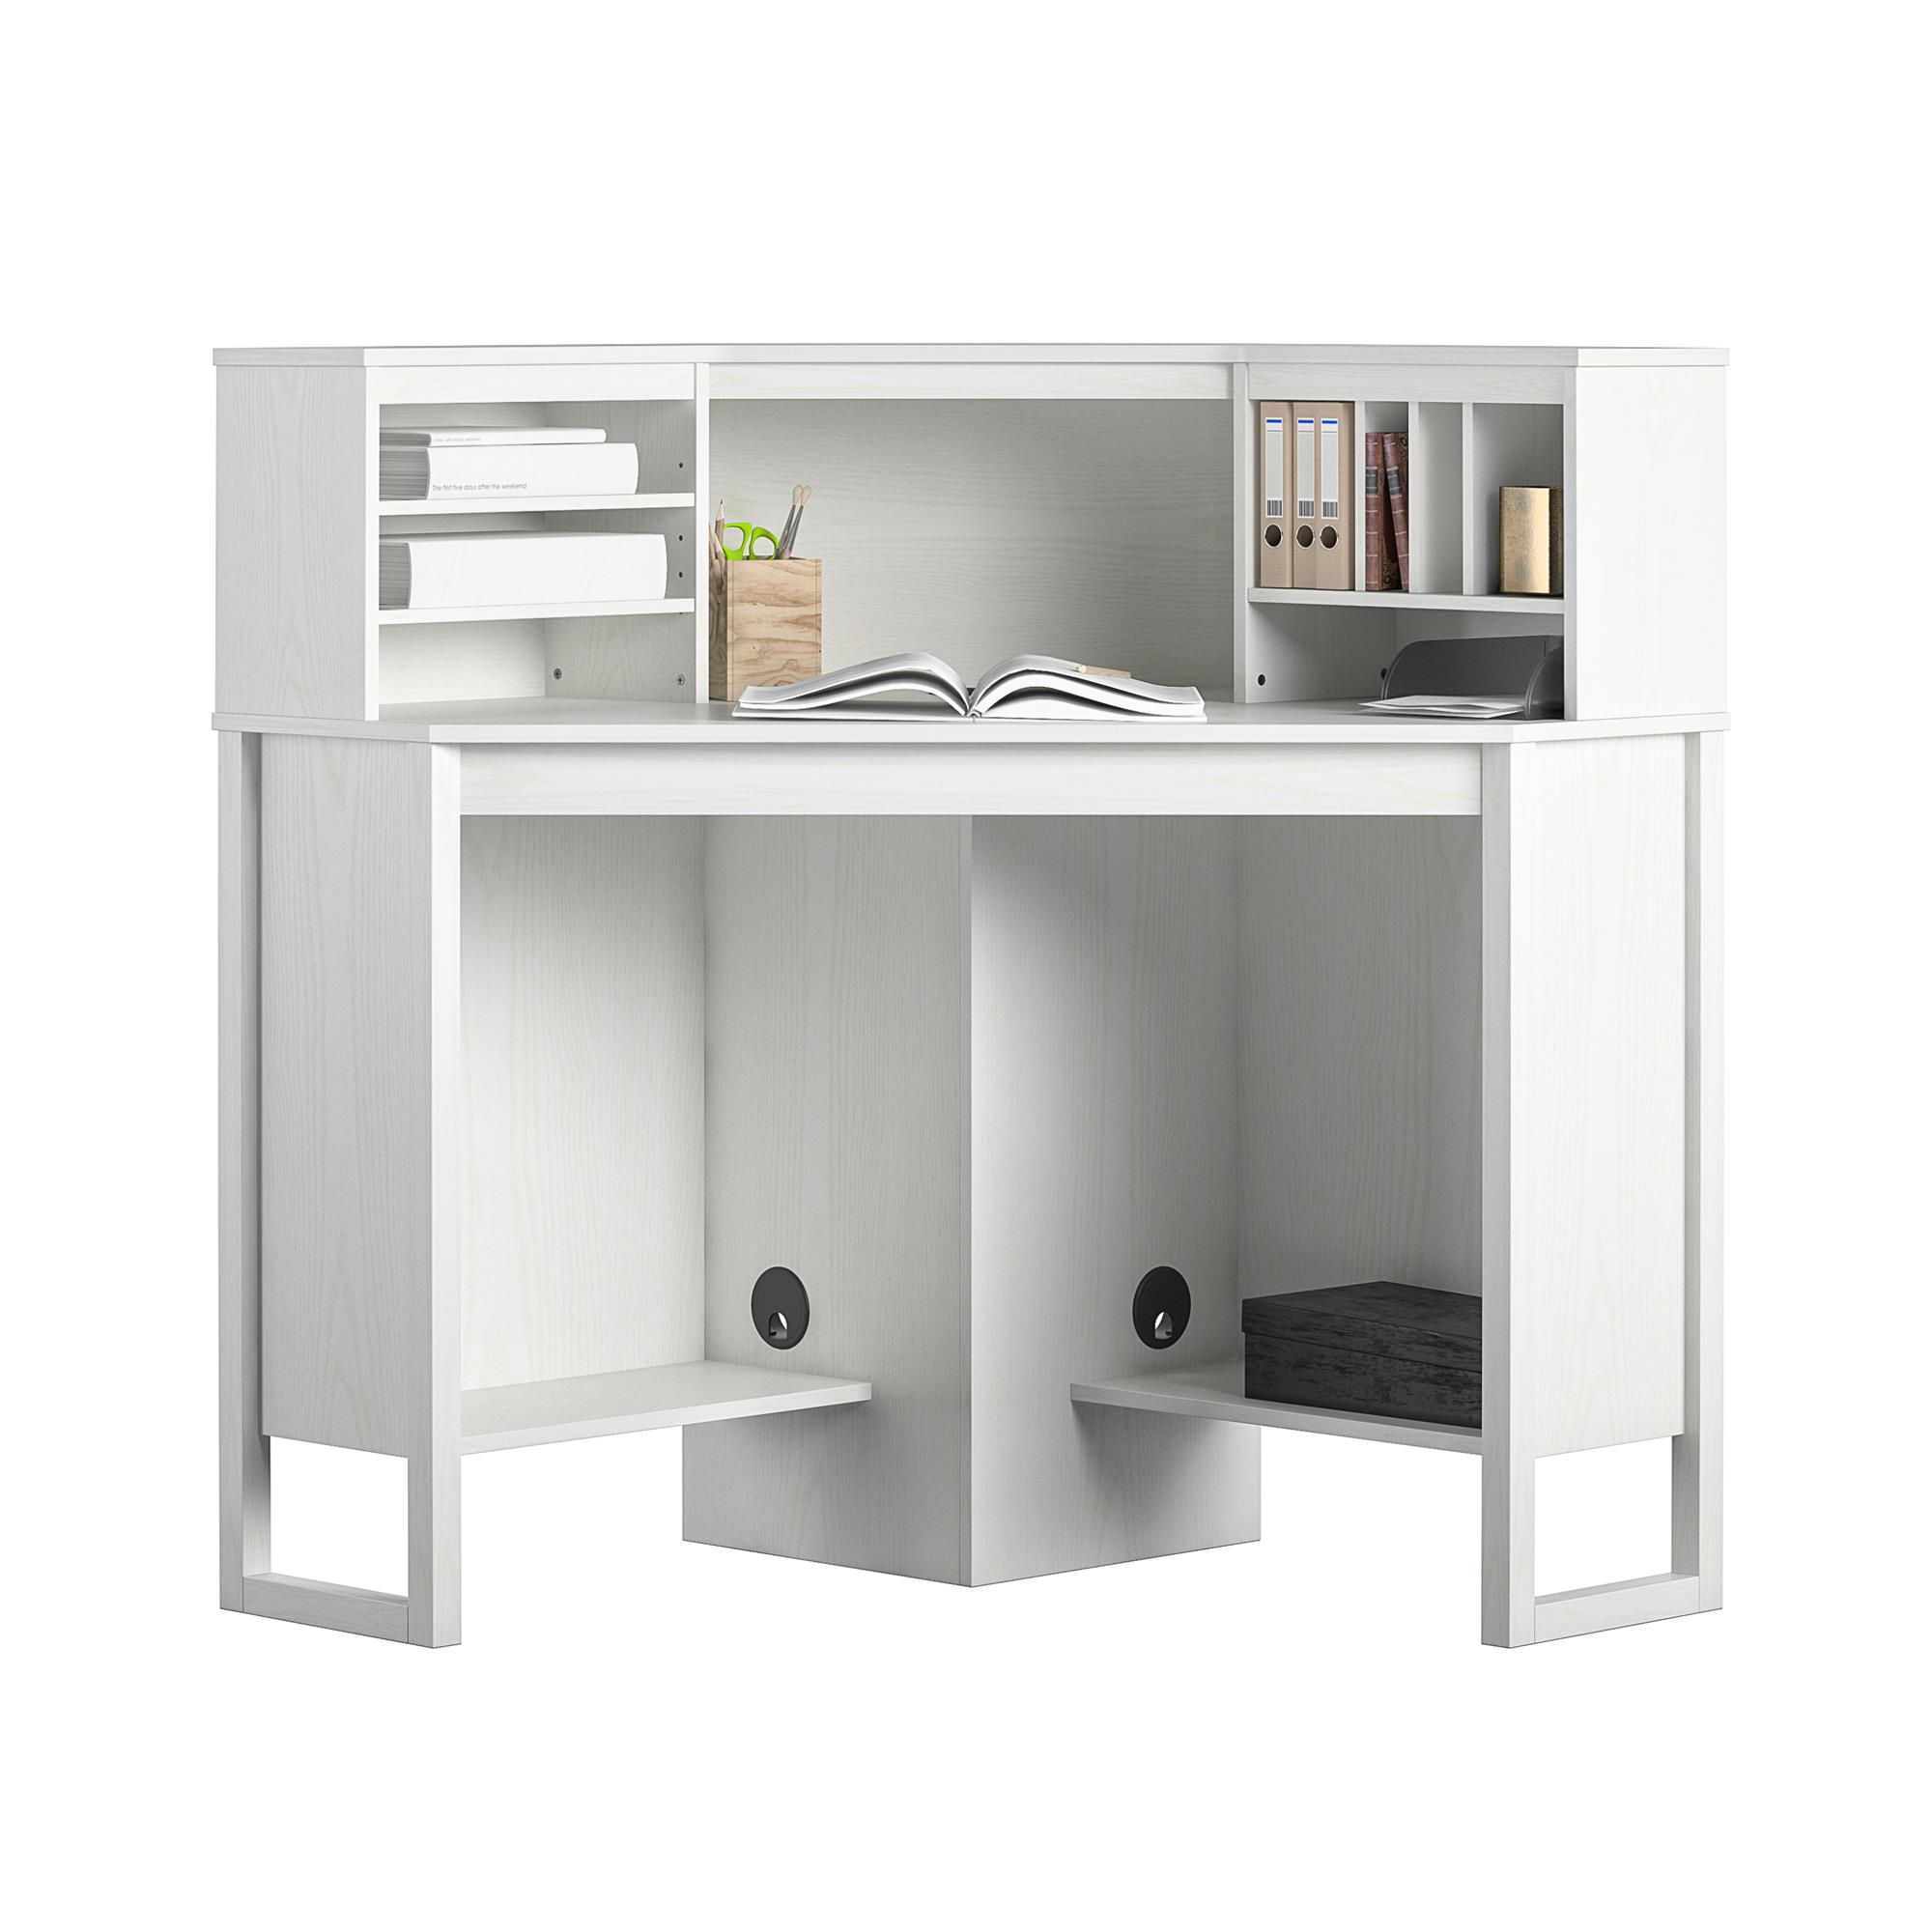 Image of: Mainstays Corner Desk With Hutch White Walmart Com Walmart Com